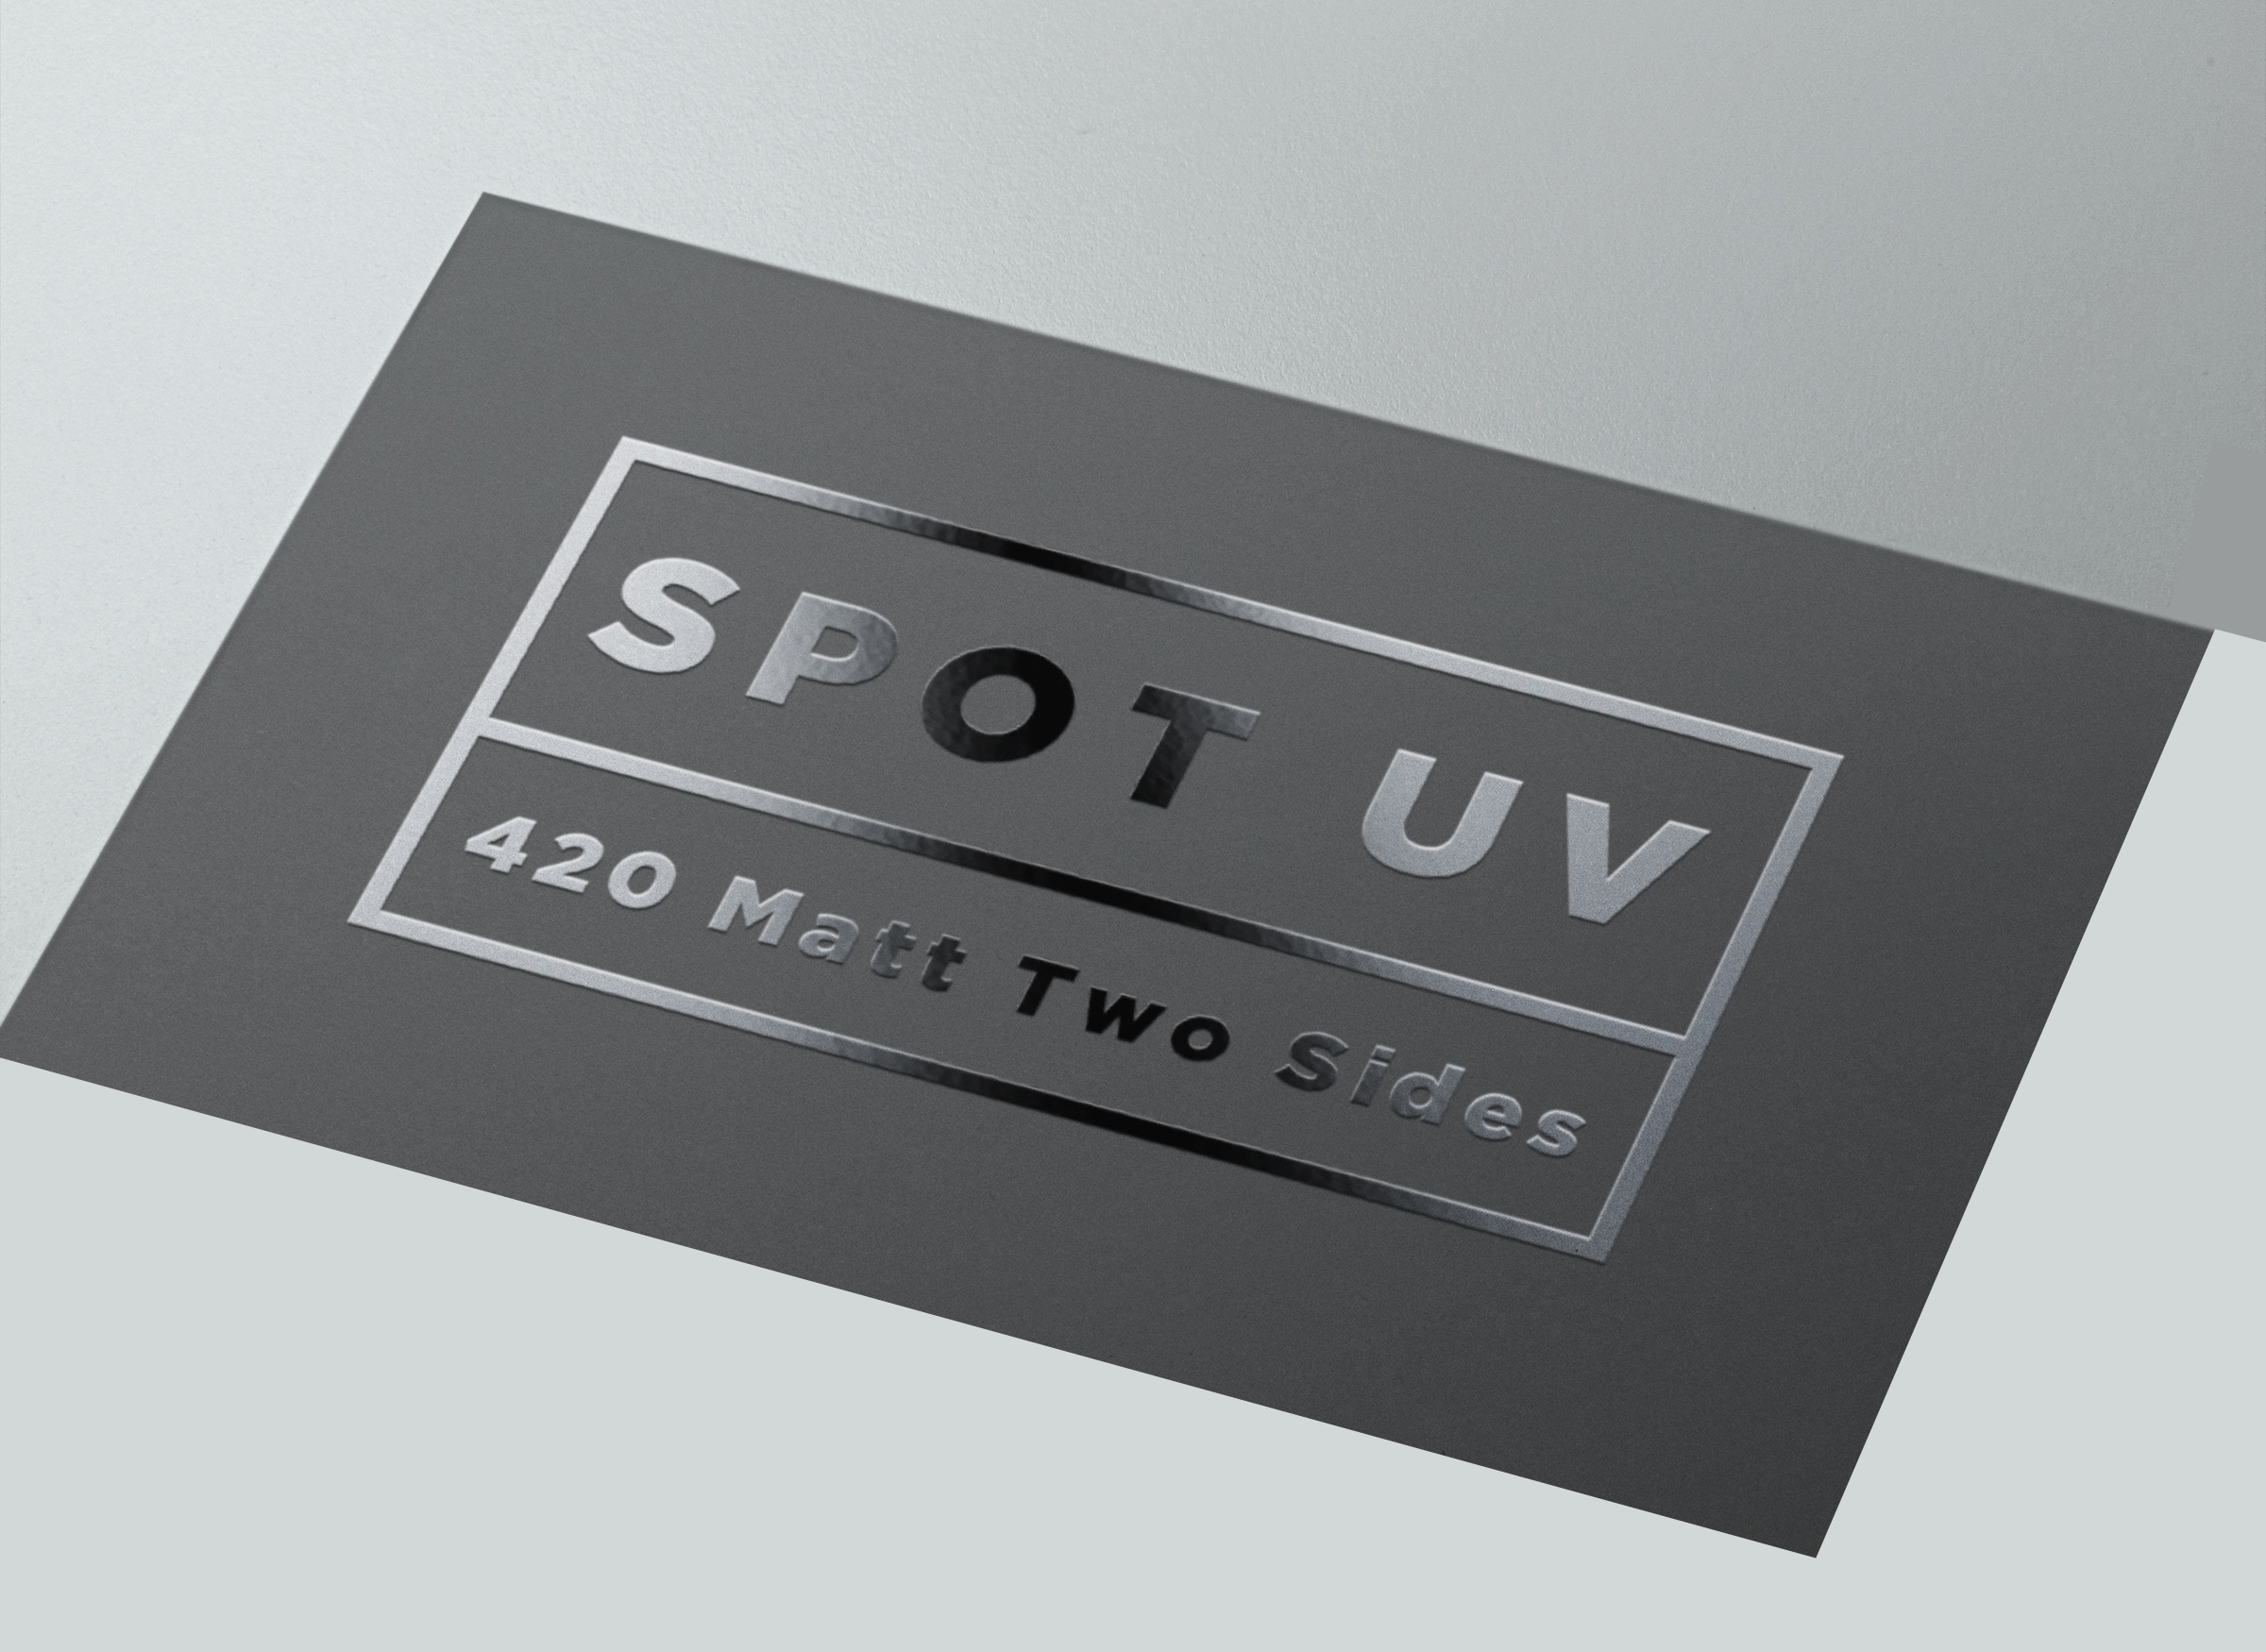 Business cards 420gsm with matt cello both sides and spot uv single 420gsm artboard matt two sides spot uv 1 side reheart Choice Image